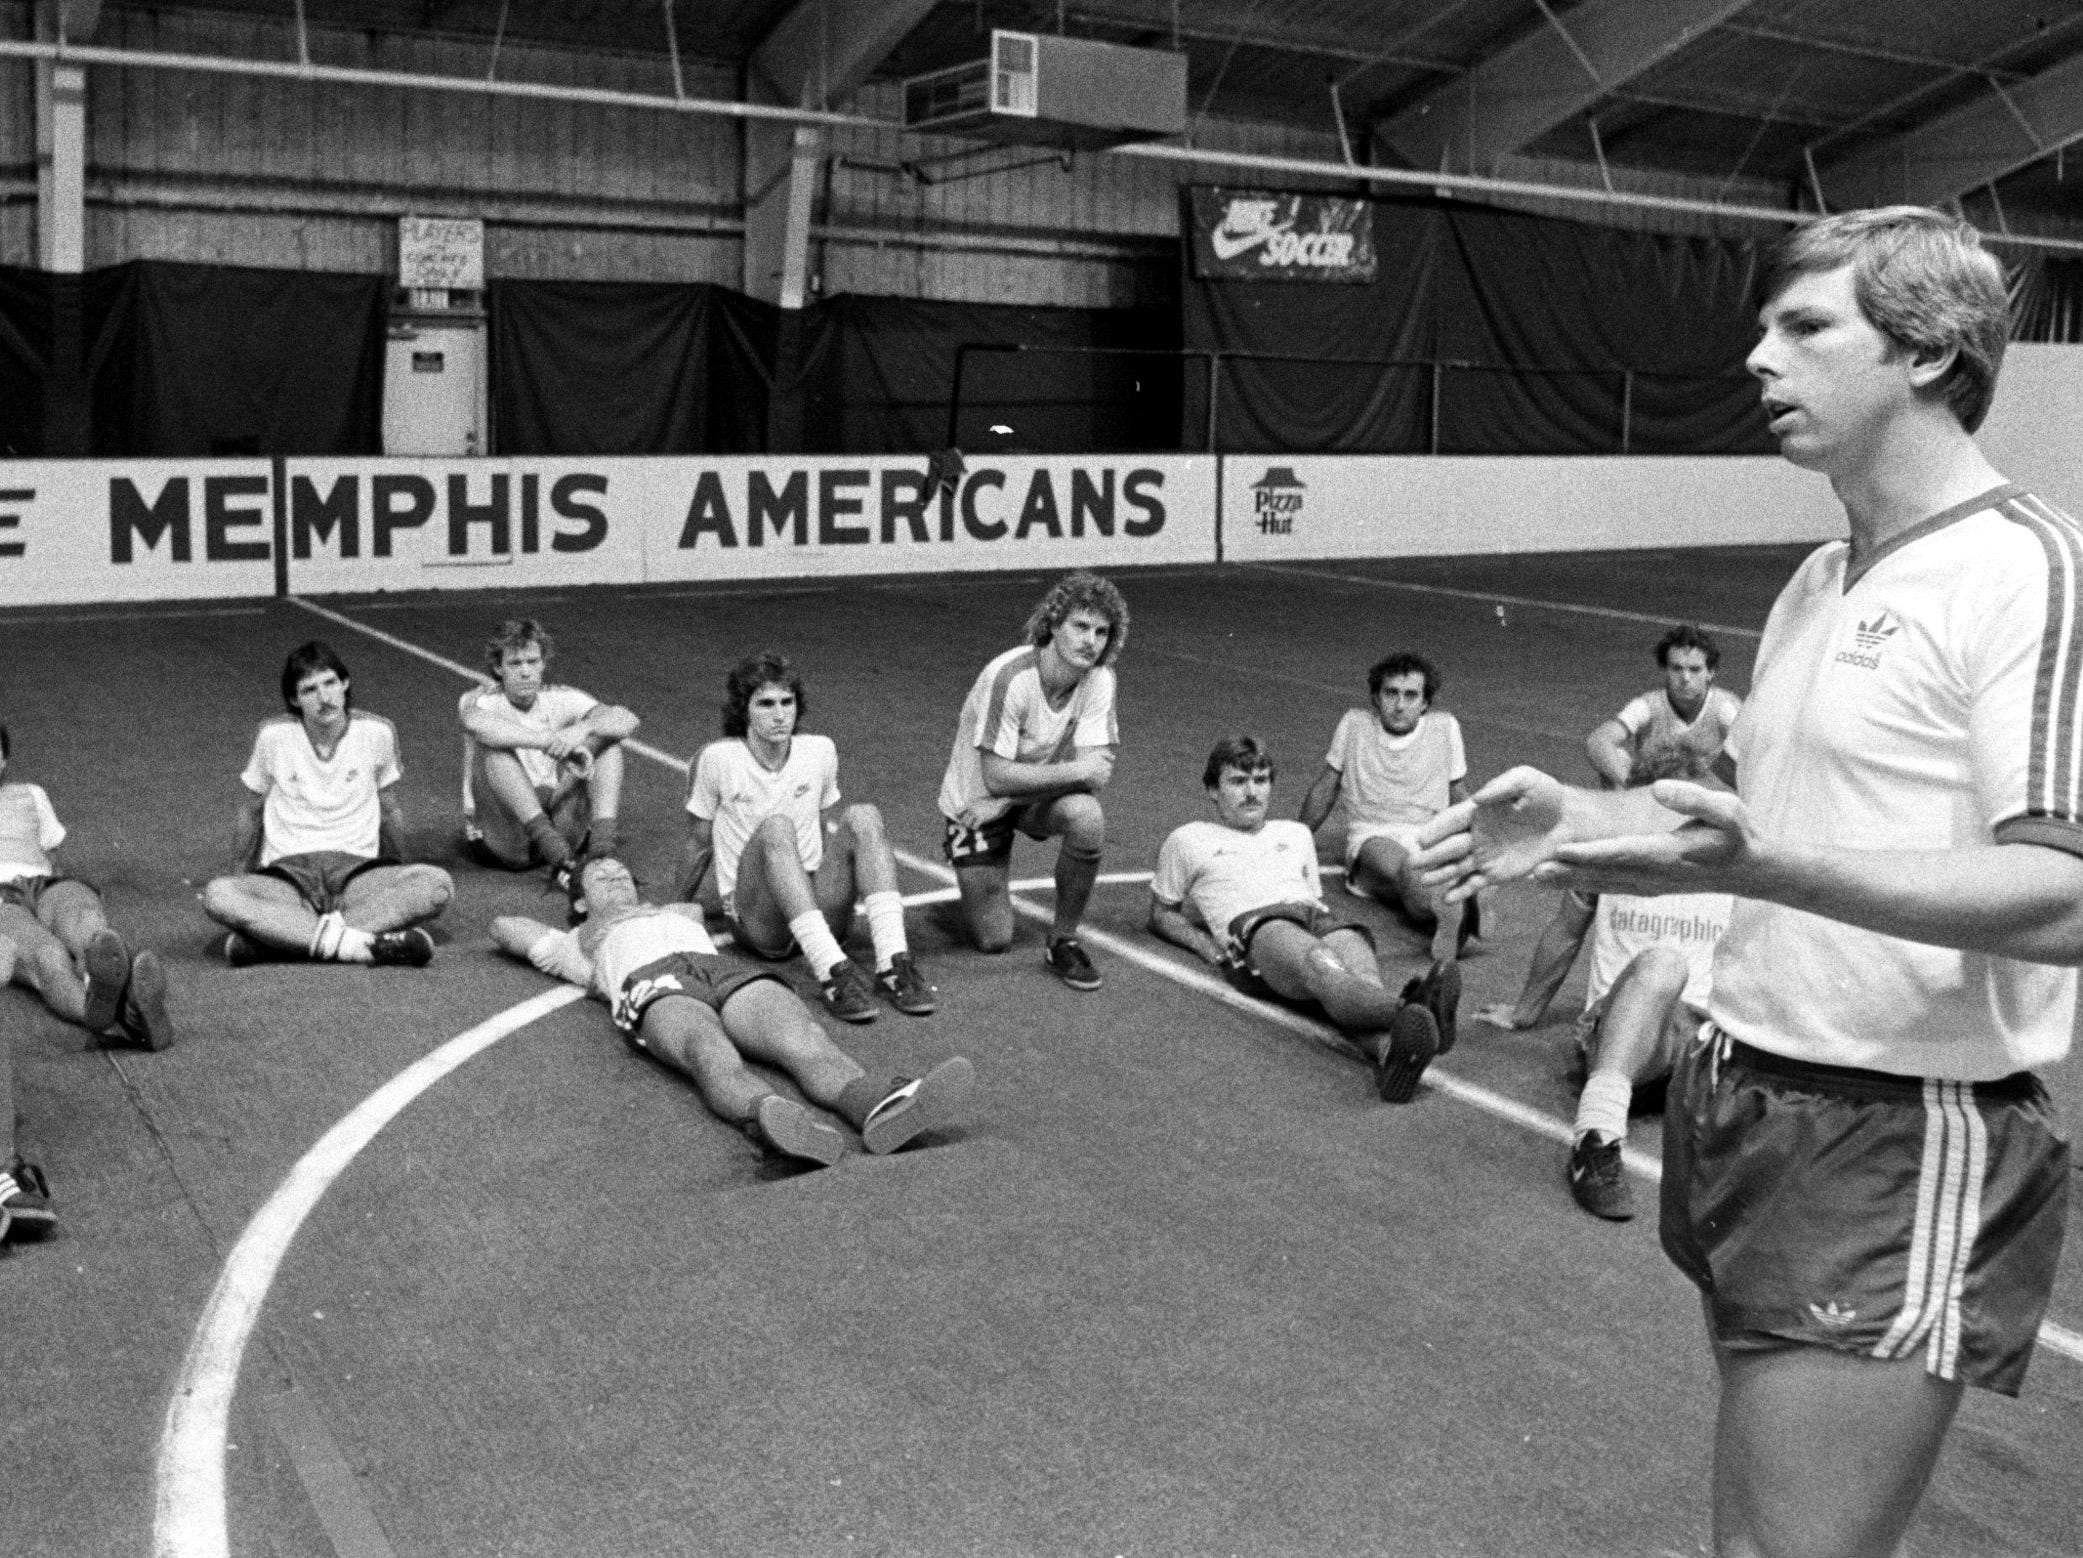 Head coach and general manager Kyle Rote Jr. makes a point to his Memphis Americans soccer team during practice on Oct. 15, 1983. Rote became U.S. pro soccer's first native-born superstar when he won the North American Soccer League scoring championship in 1973.